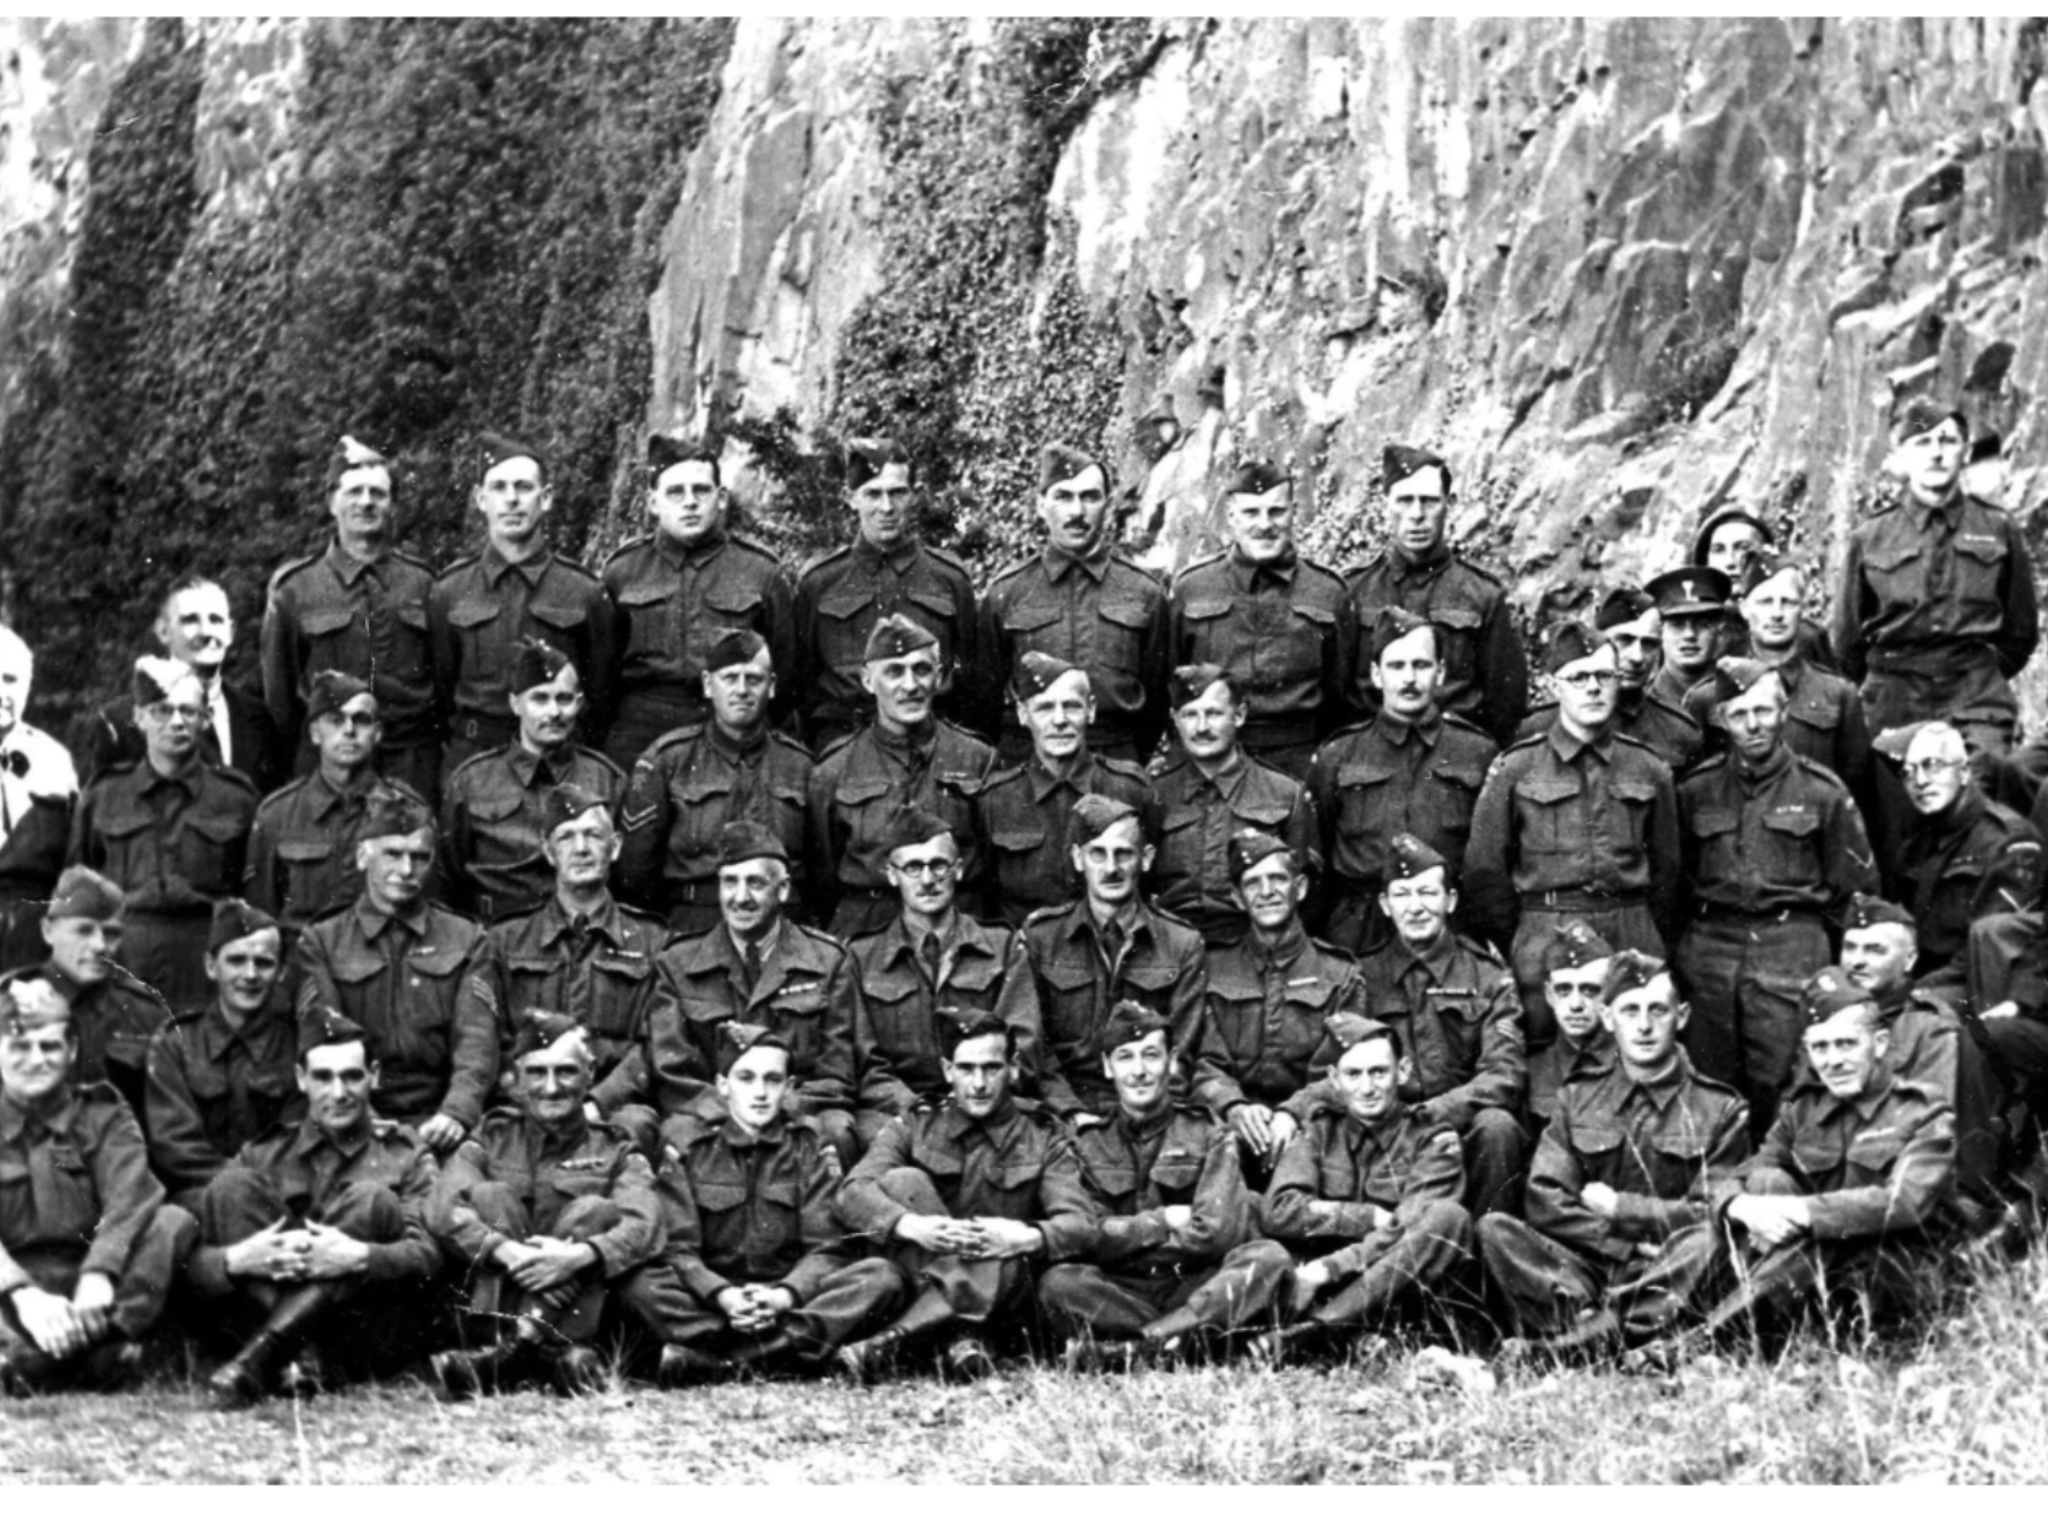 Bleadon & Lympsham Home Guard